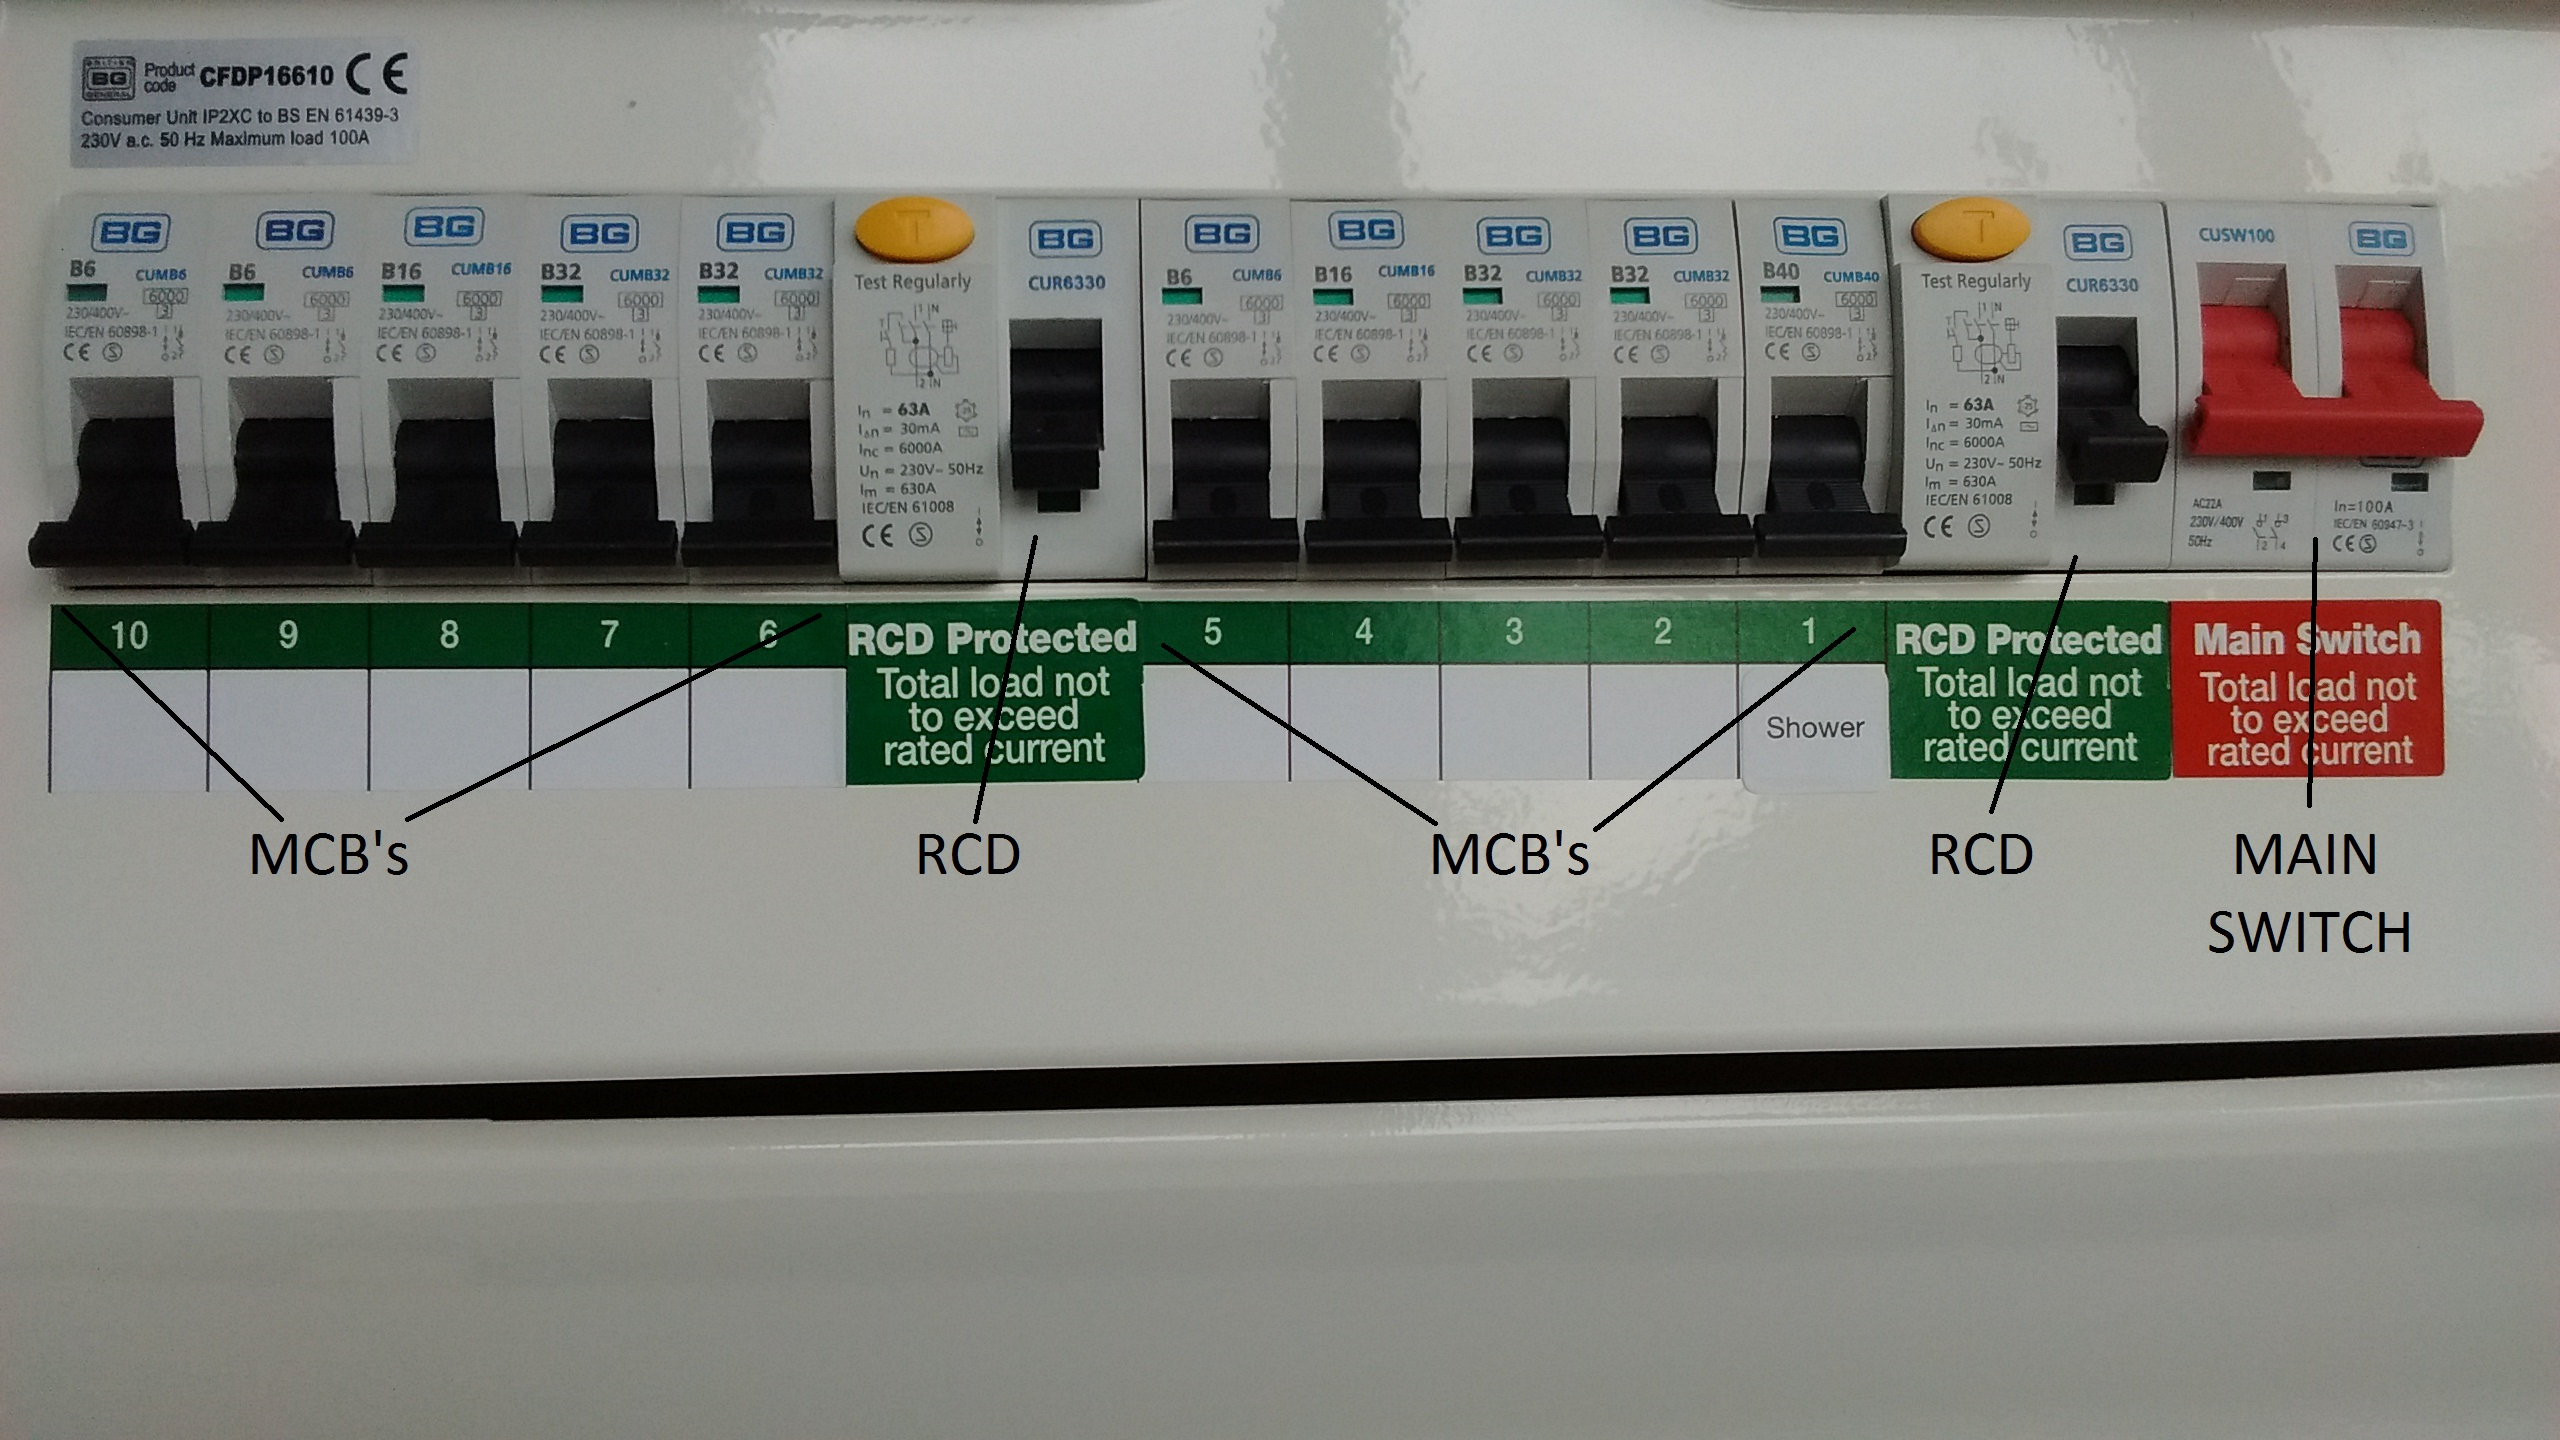 mcbs-rcds-main-switch-on-consumer-unit